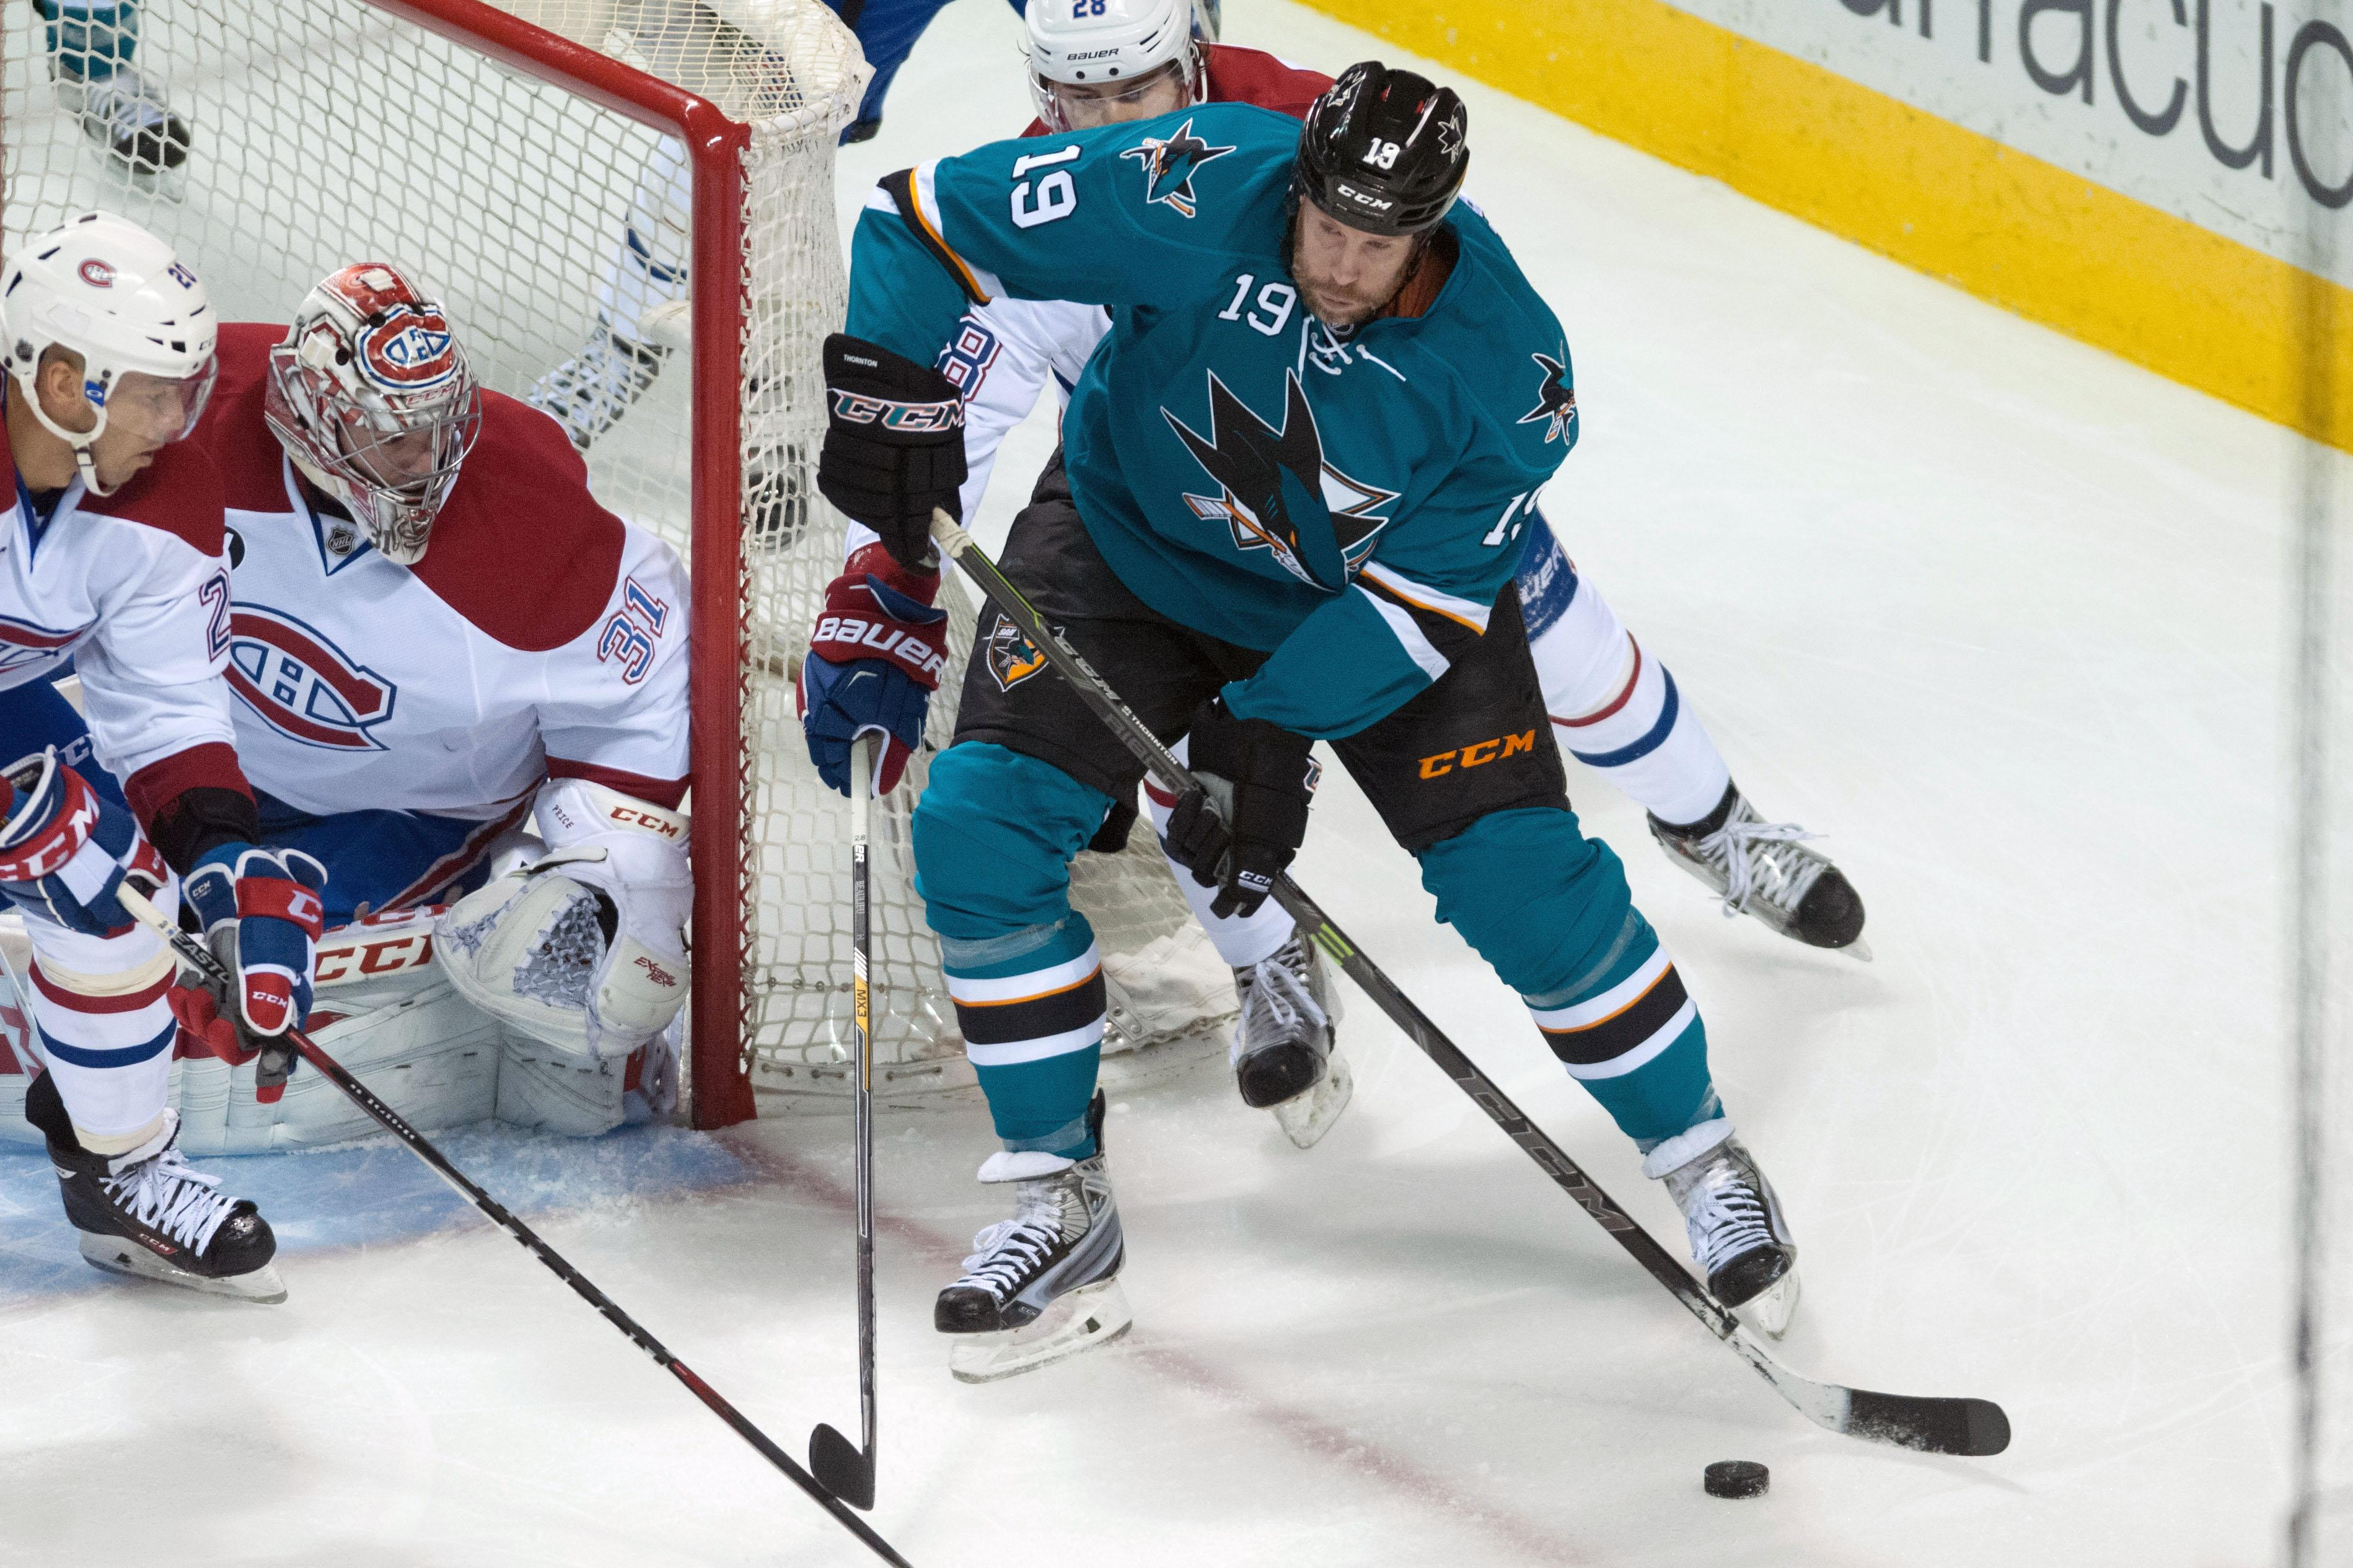 San Jose Sharks push patience at critical juncture